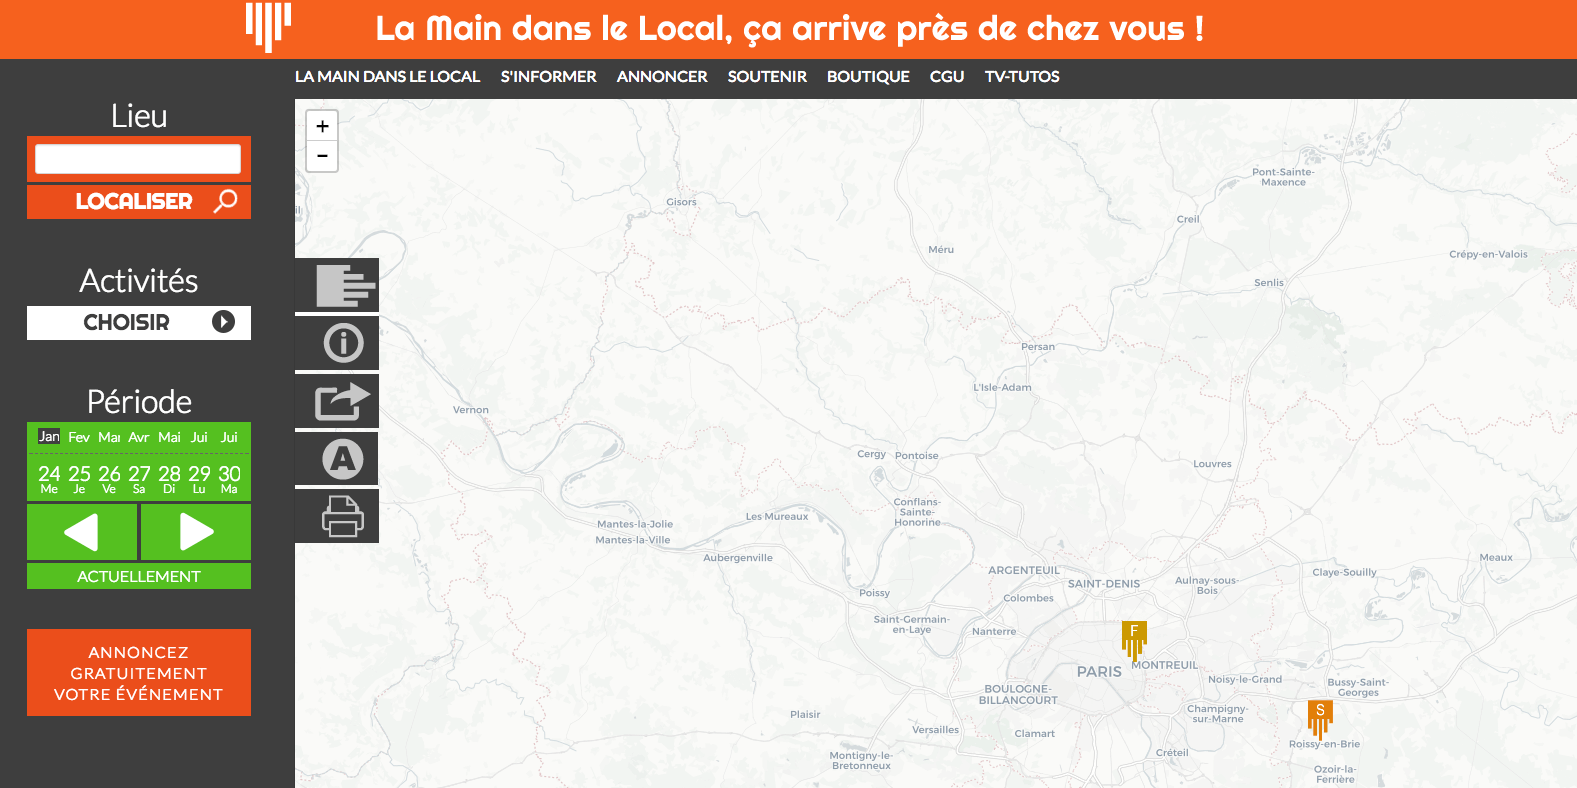 la main dans le local